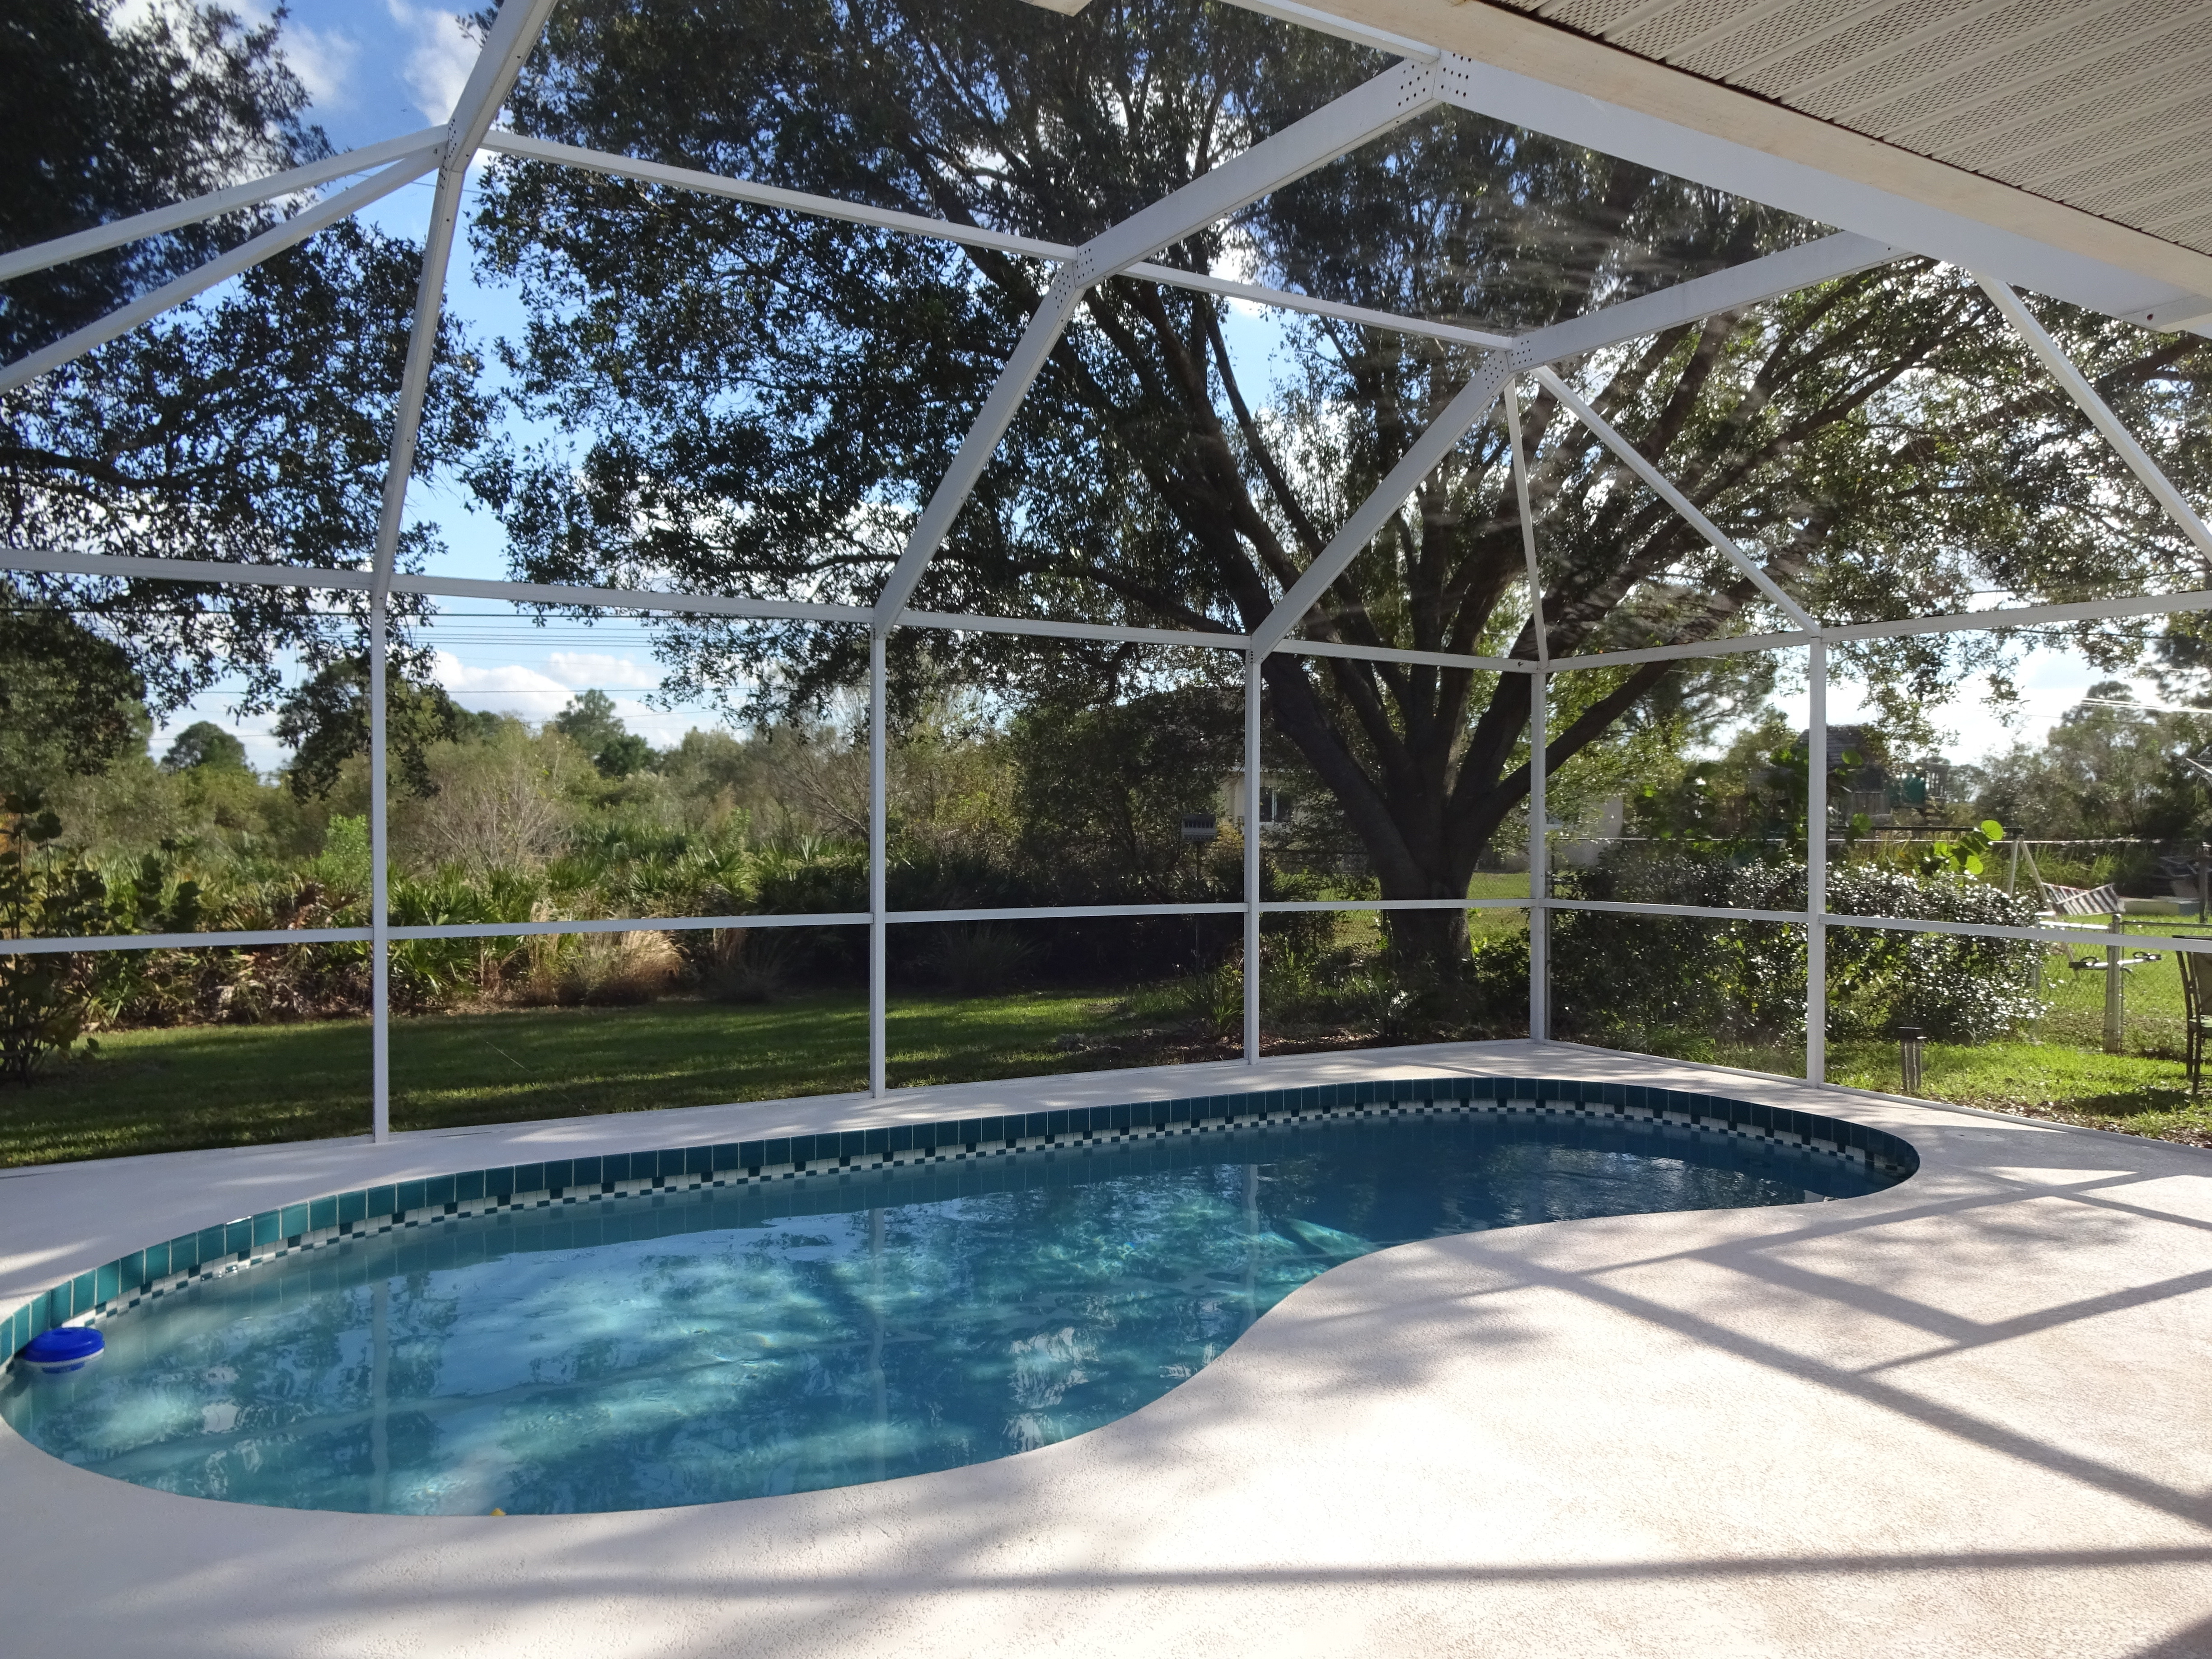 Three Bedroom Two Bath Pool Home For Sale In North Port